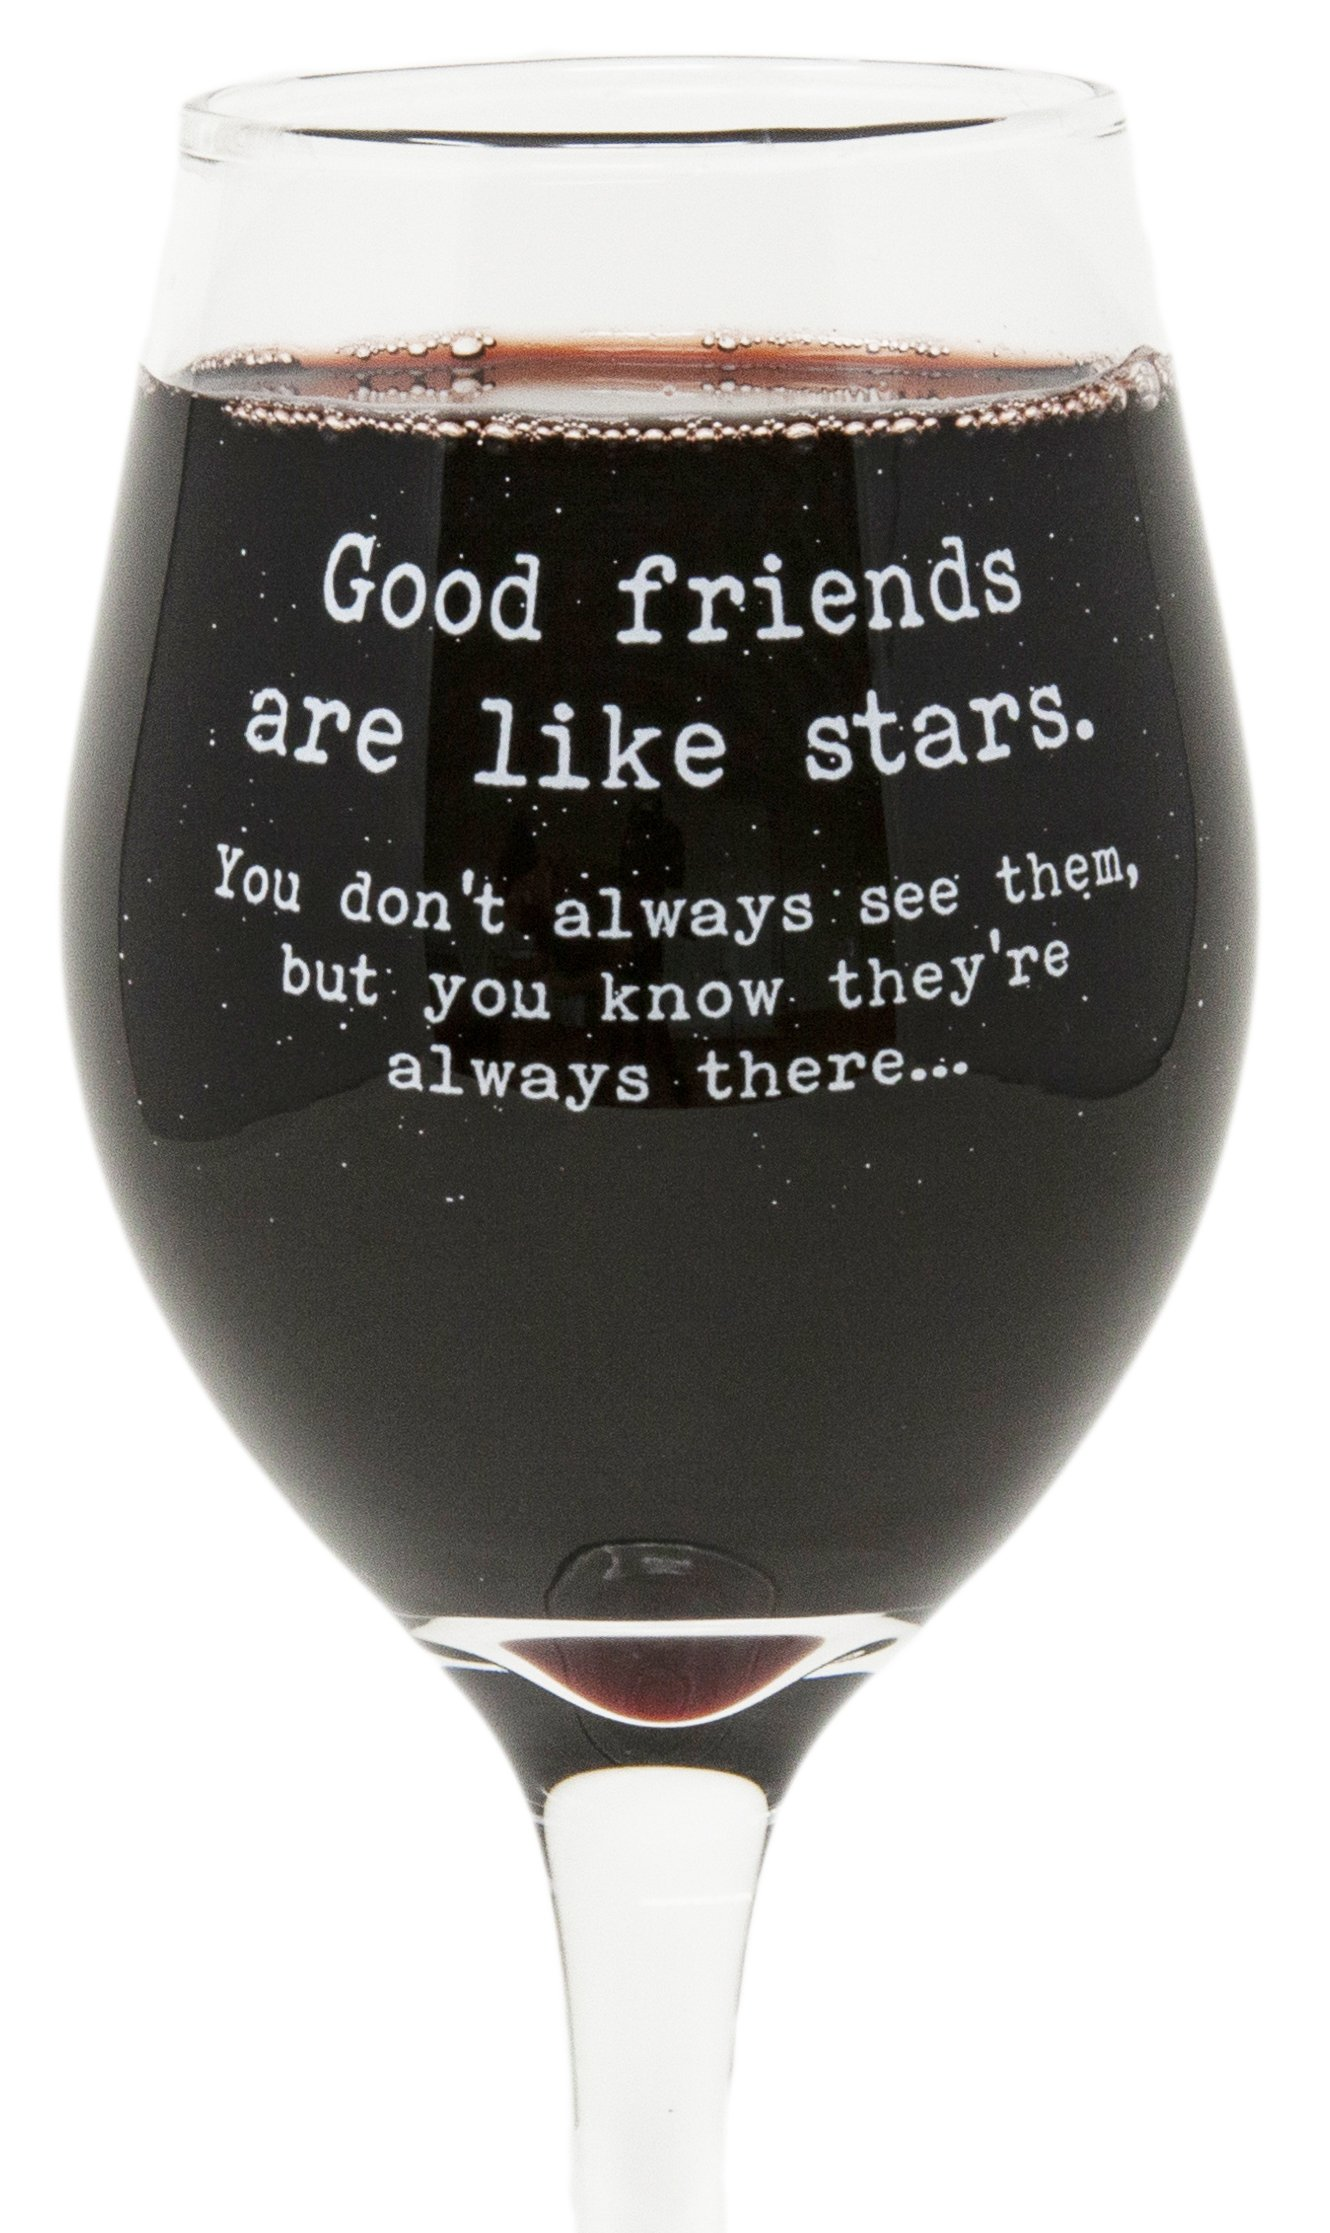 Funny Guy Mugs Good Friends Are Like Stars Wine Glass, 11-Ounce - Unique Gift for Women, Mom, Daughter, Wife, Aunt, Sister, Girlfriend, Teacher or Coworker (Several Styles To Choose From)